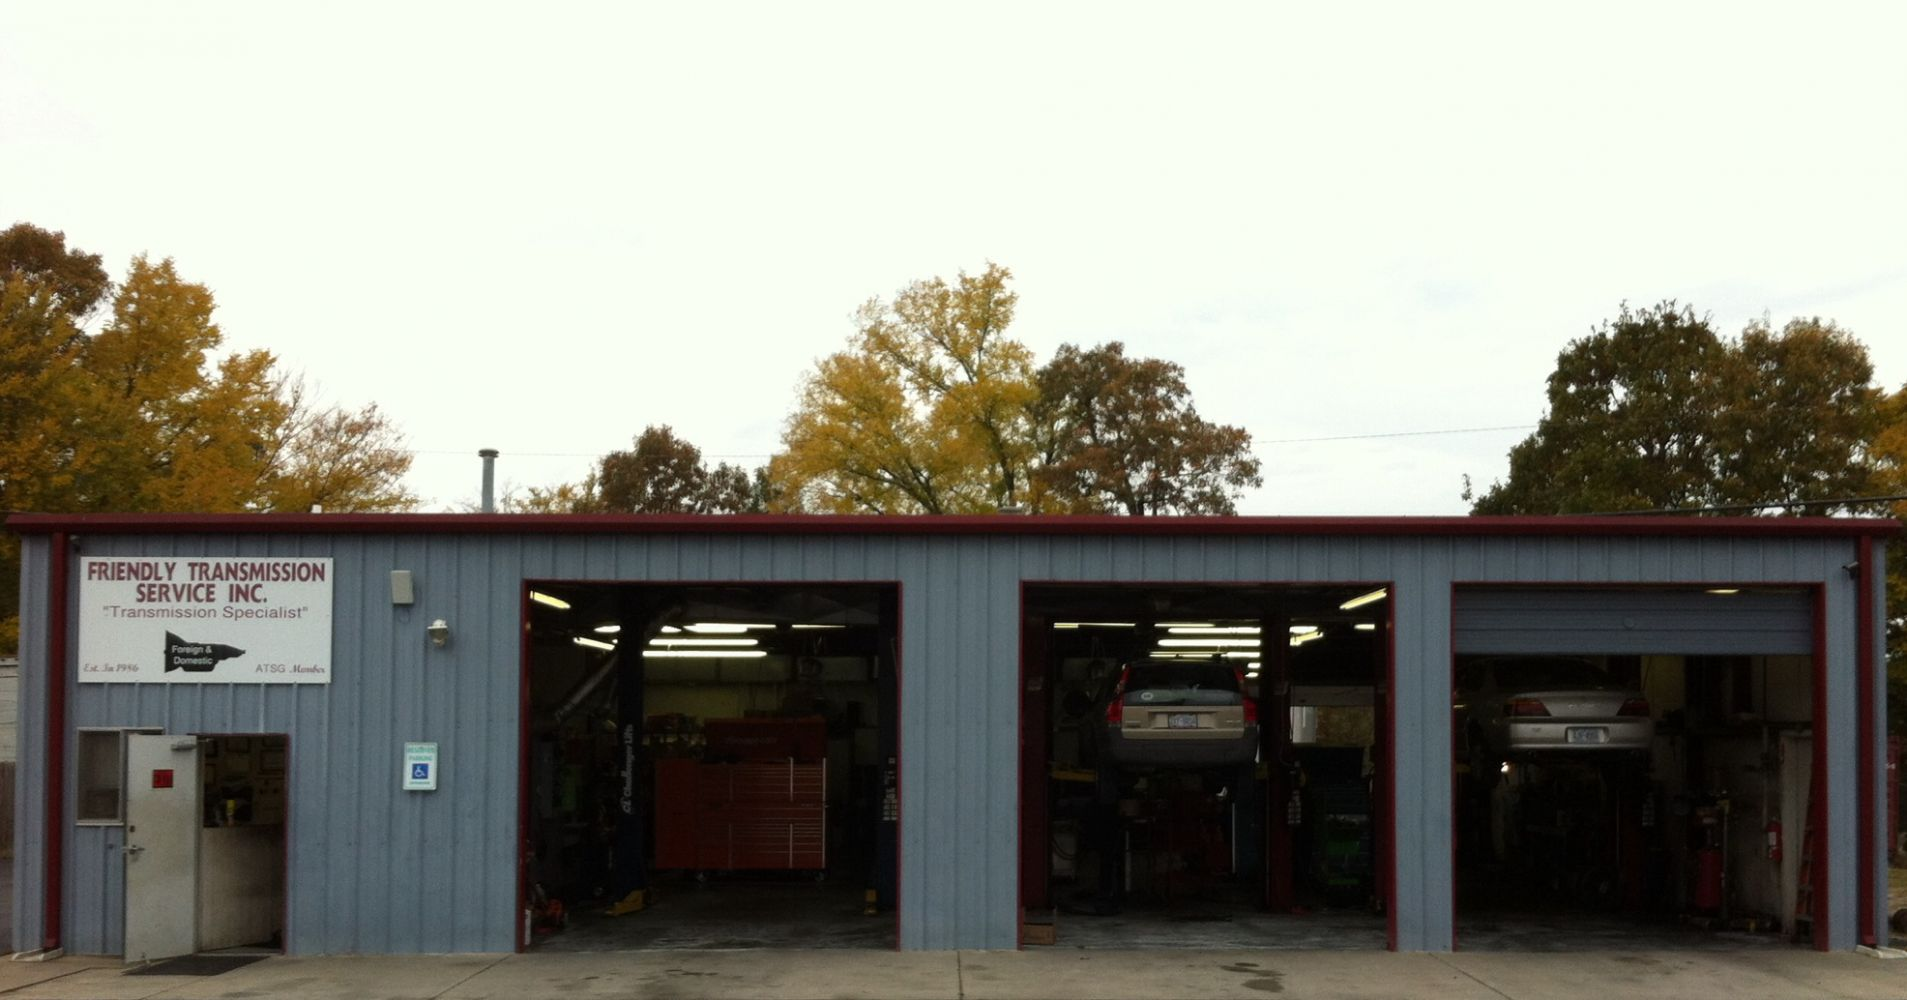 Shop for transmission repairs in High Point, NC